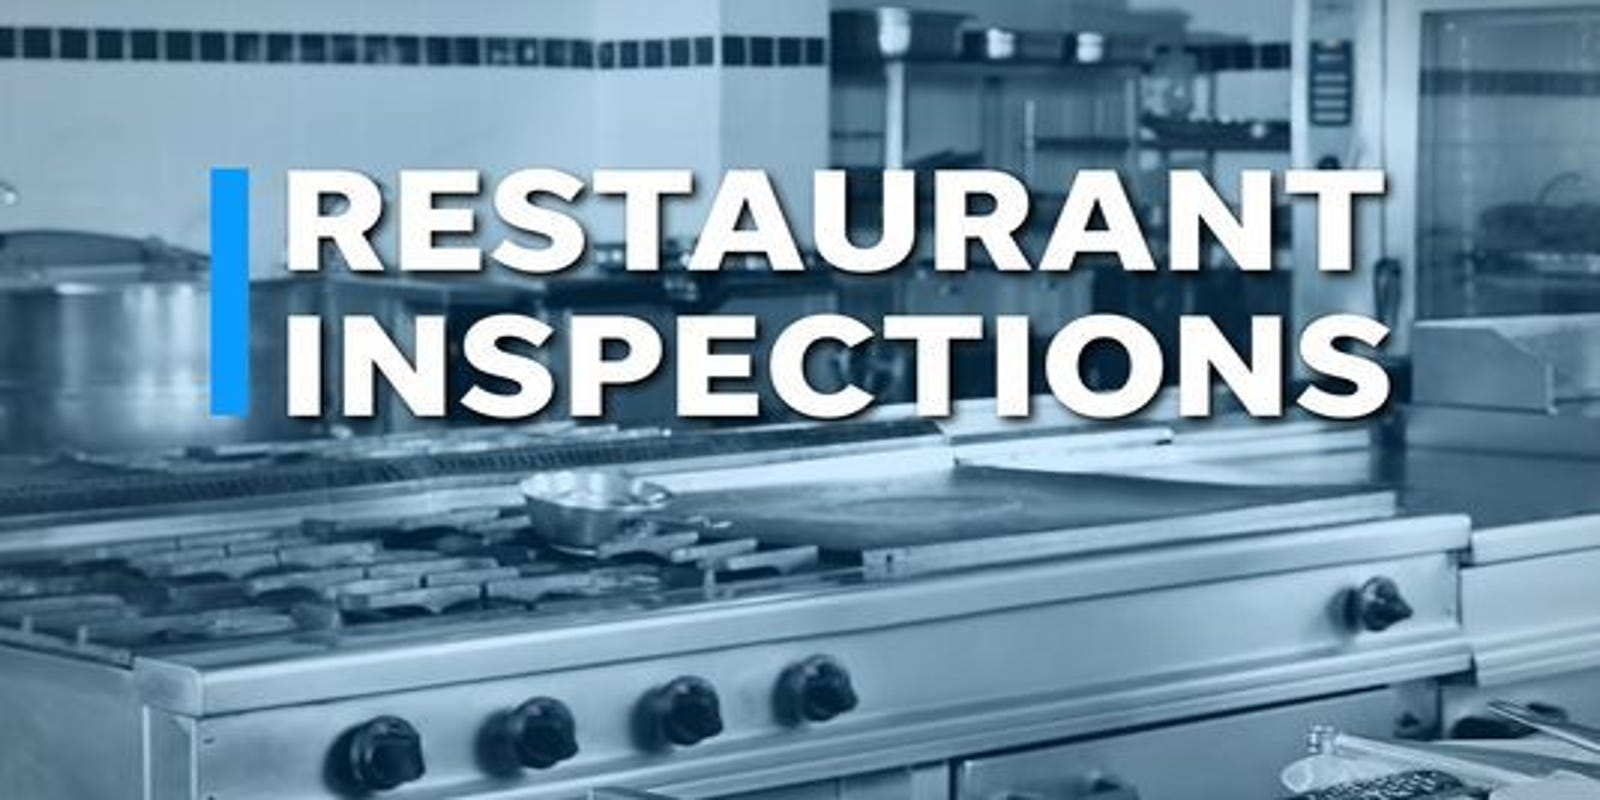 York County restaurant inspections: Encrusted grease, soil accumulation